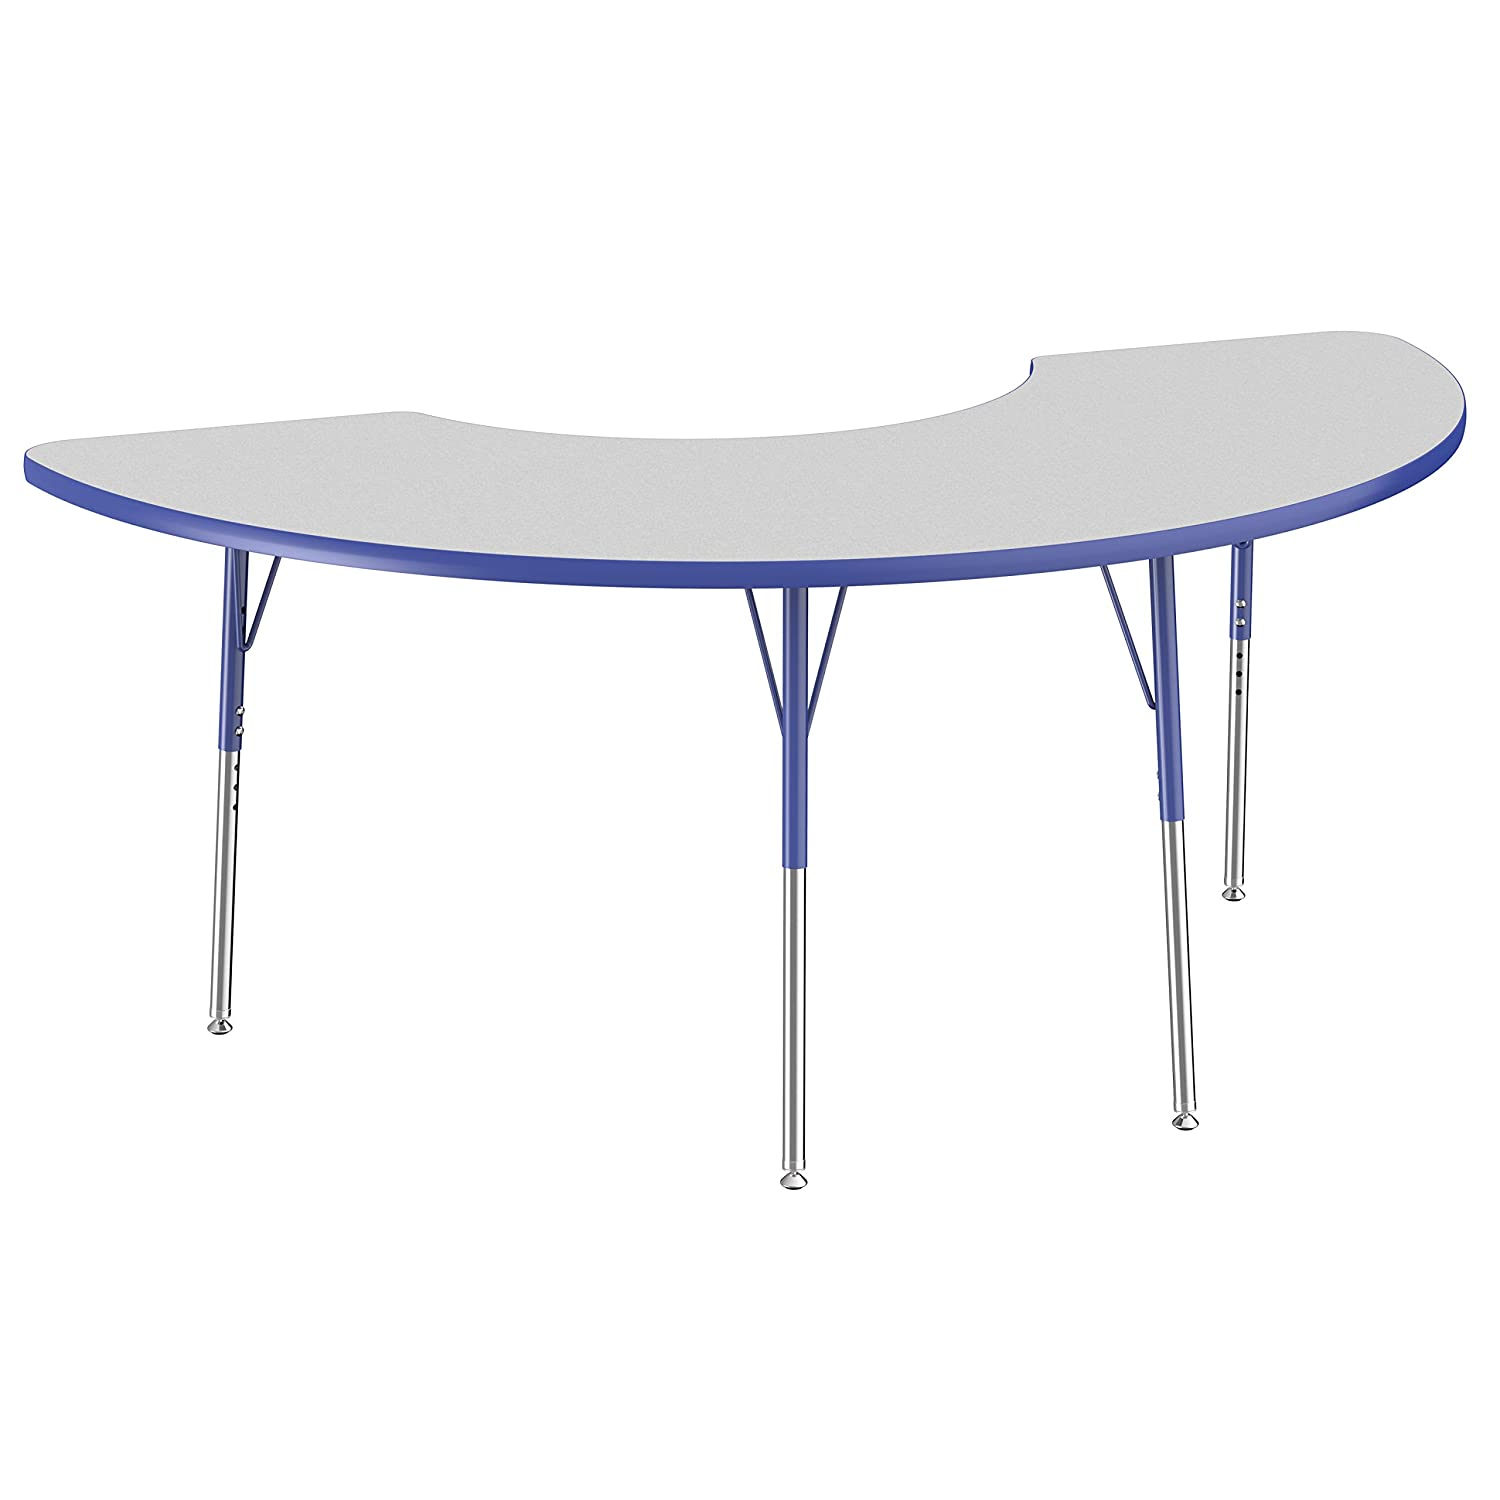 FDP Half Moon Activity School and Office Table (36 x 72 inch), Standard Legs with Swivel Glides for Collaborative Seating Environments, Adjustable Height 19-30 inches - Gray Top and Blue Edge